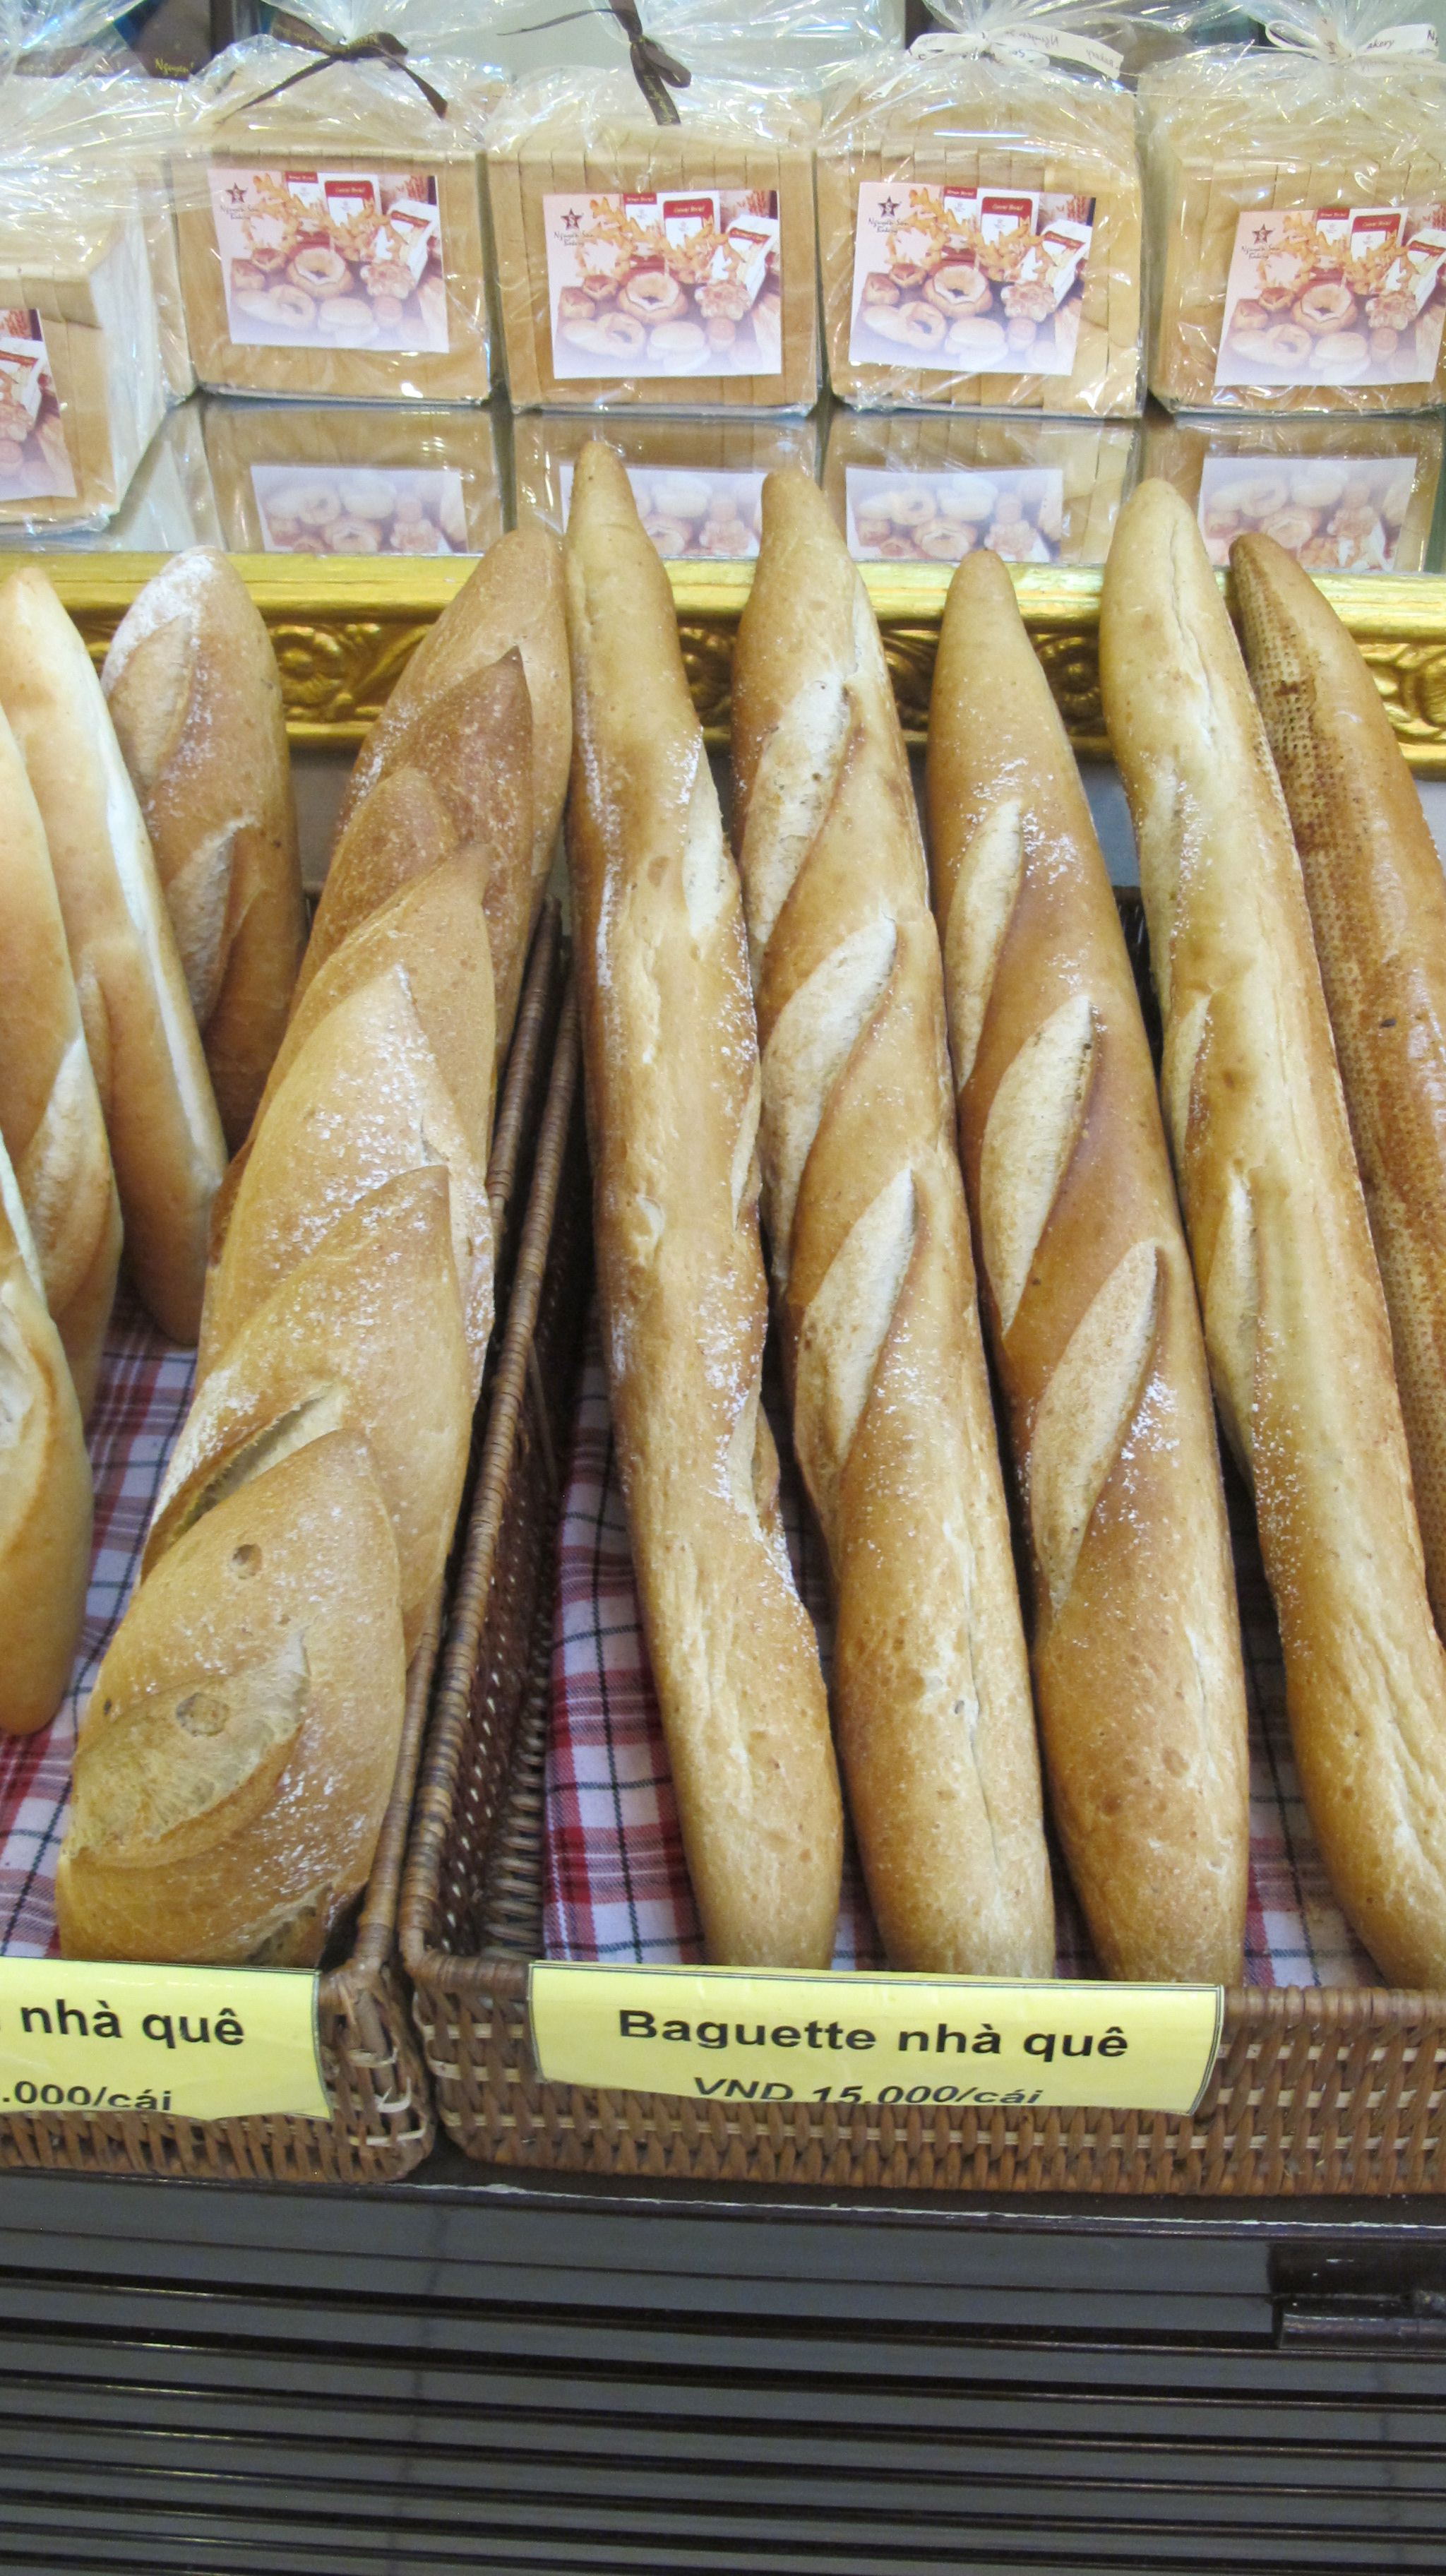 French baguettes and techniques for making the bread from natural yeast leaven